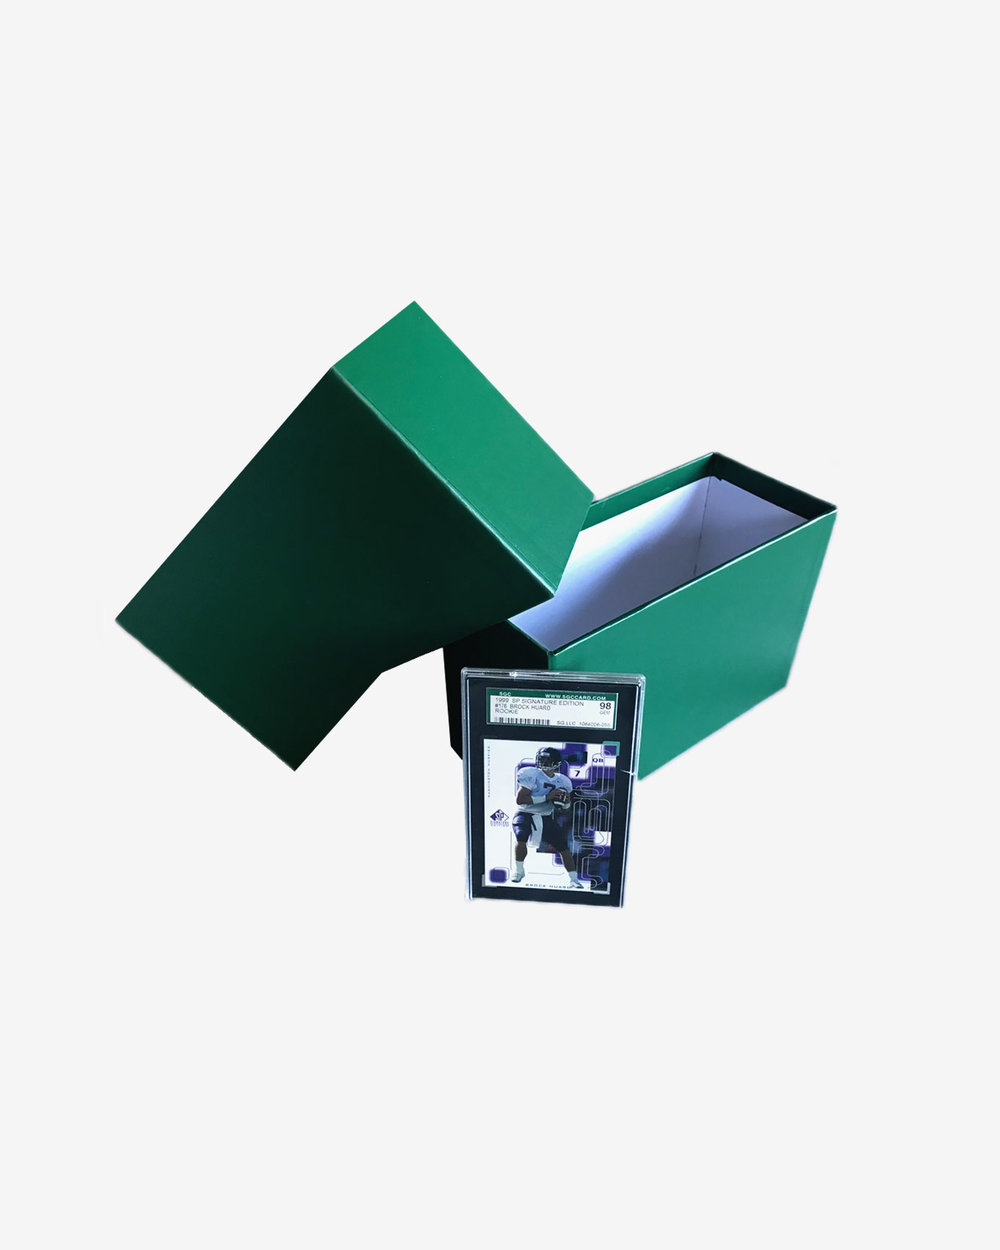 The Graded Card Storage Box - Now Available in Green